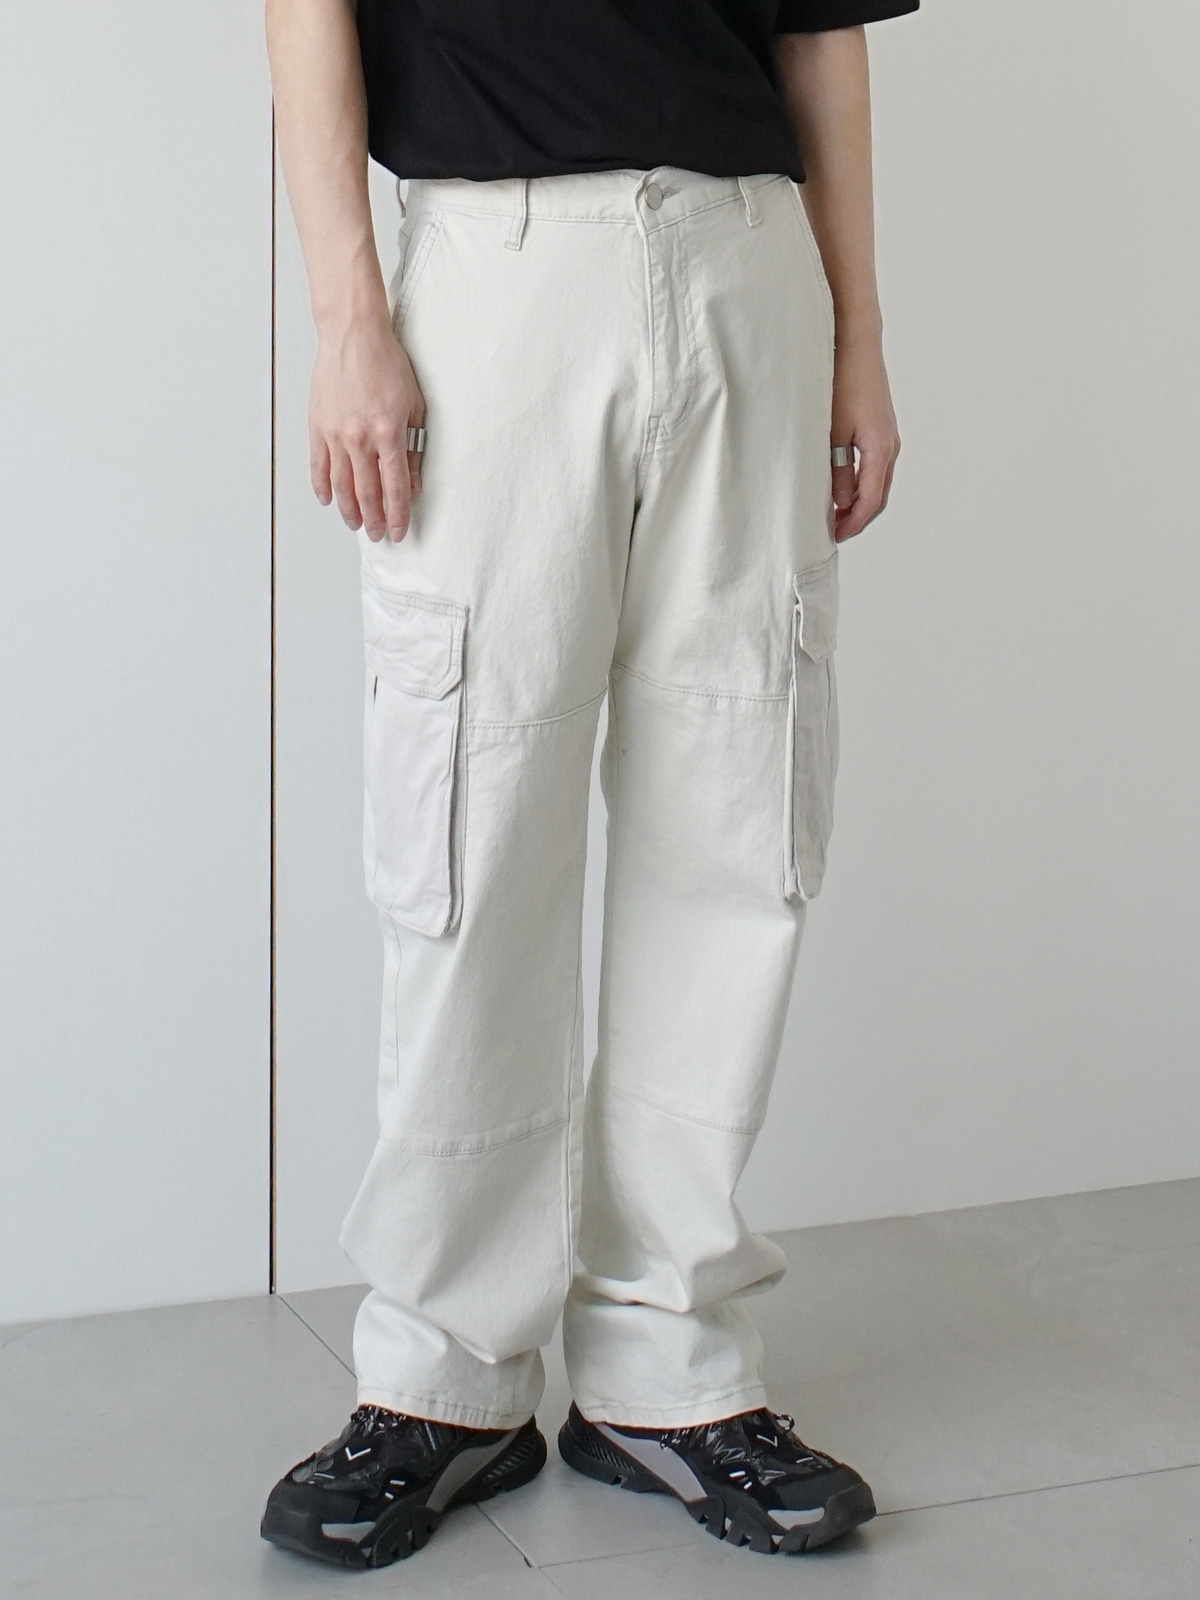 Away Cargo Pants (2color)